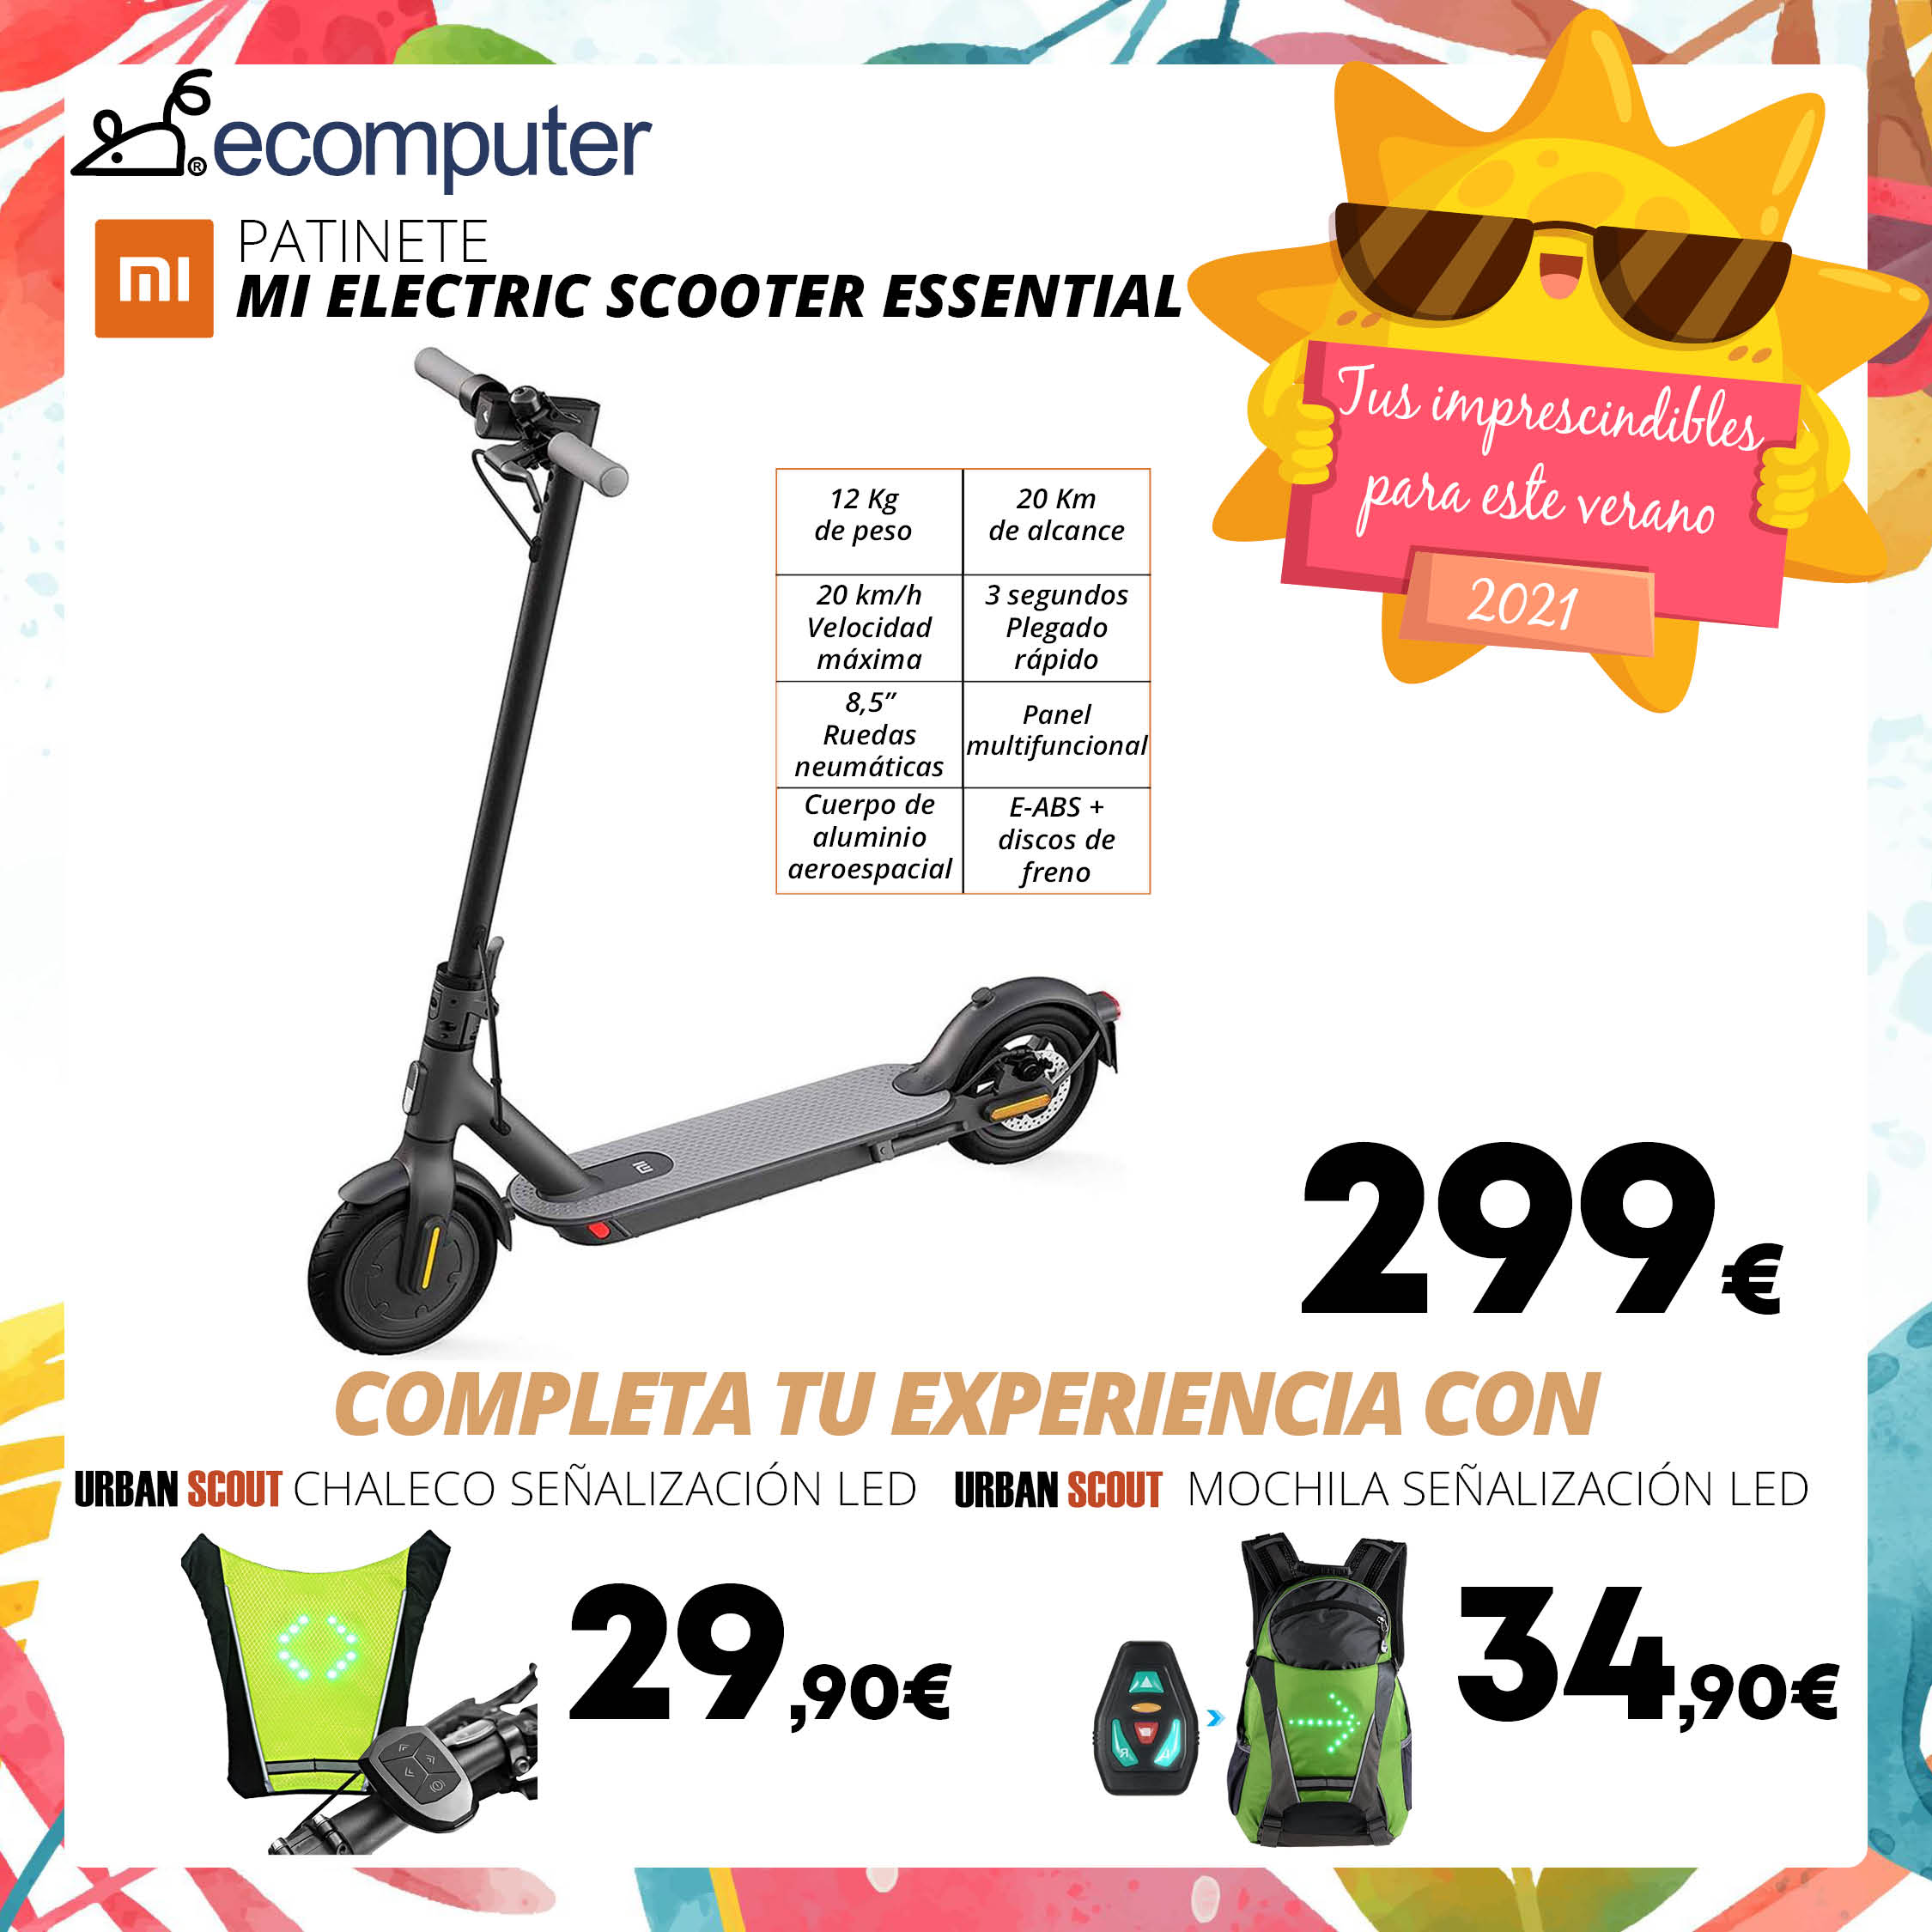 Patinete Mi Electric Scooter Essential